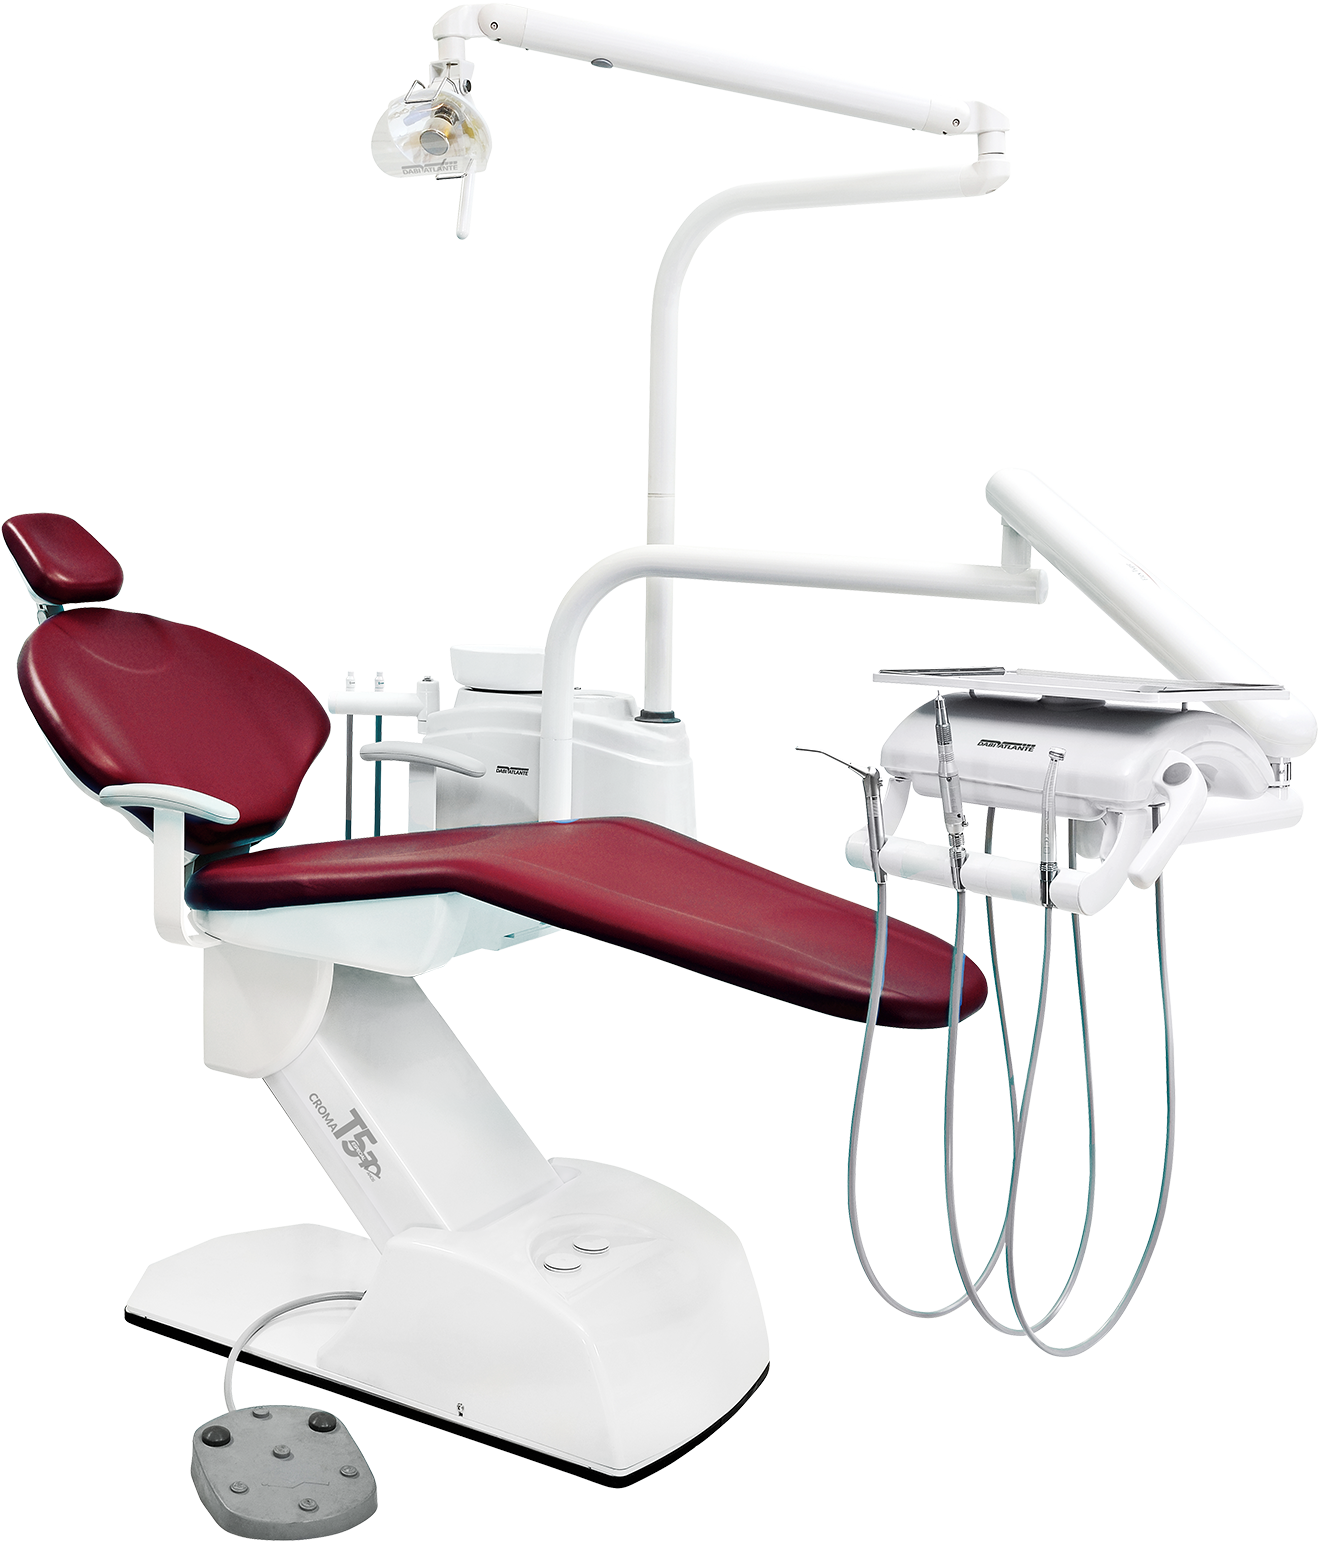 Mectron Dental India Pvt Ltd is having widest range of Dental